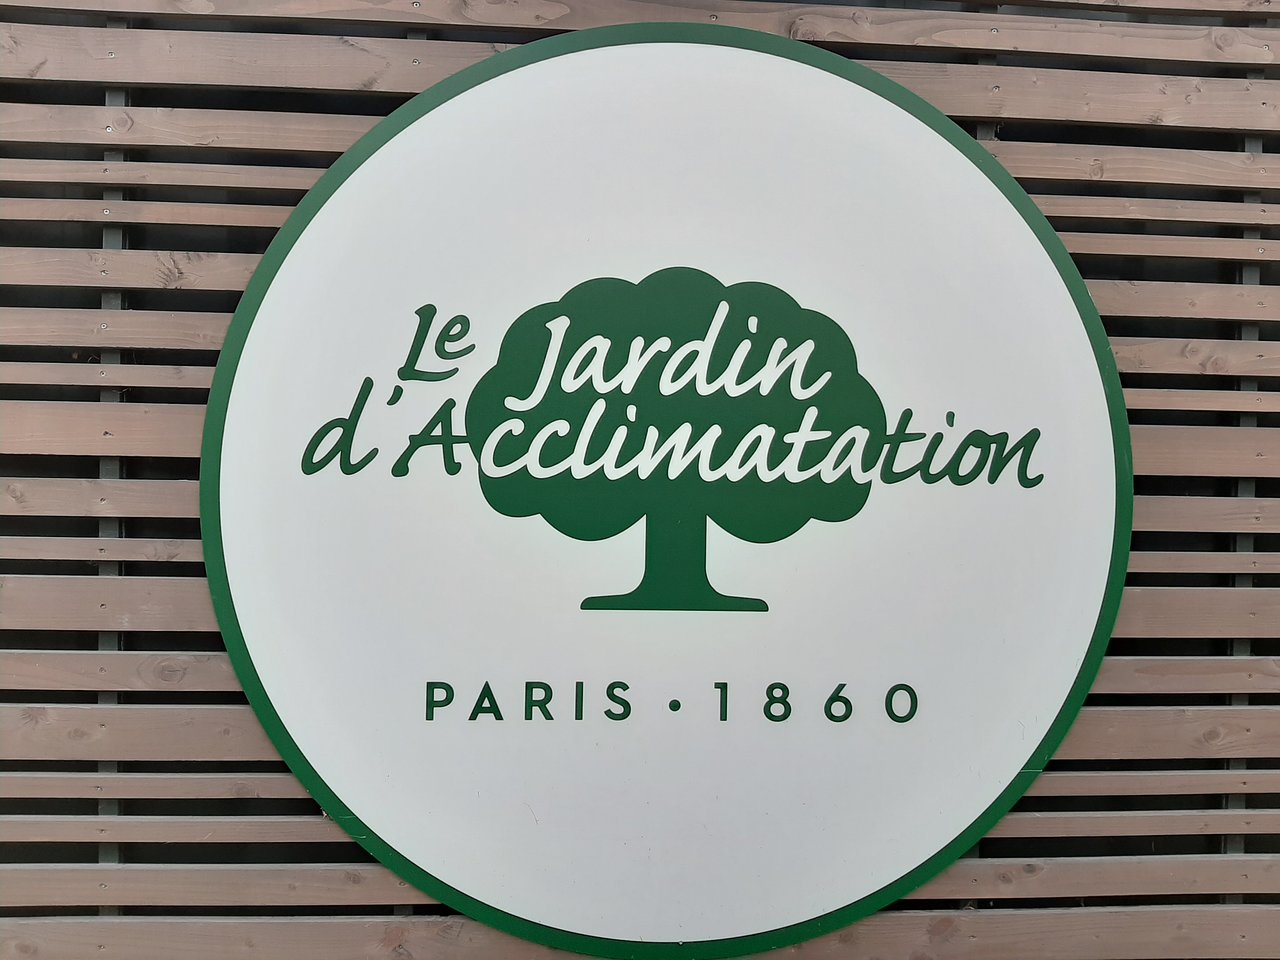 Restaurant Jardin D Acclimatation Beau Jardin D Acclimatation Paris 2020 All You Need to Know Of 34 Génial Restaurant Jardin D Acclimatation